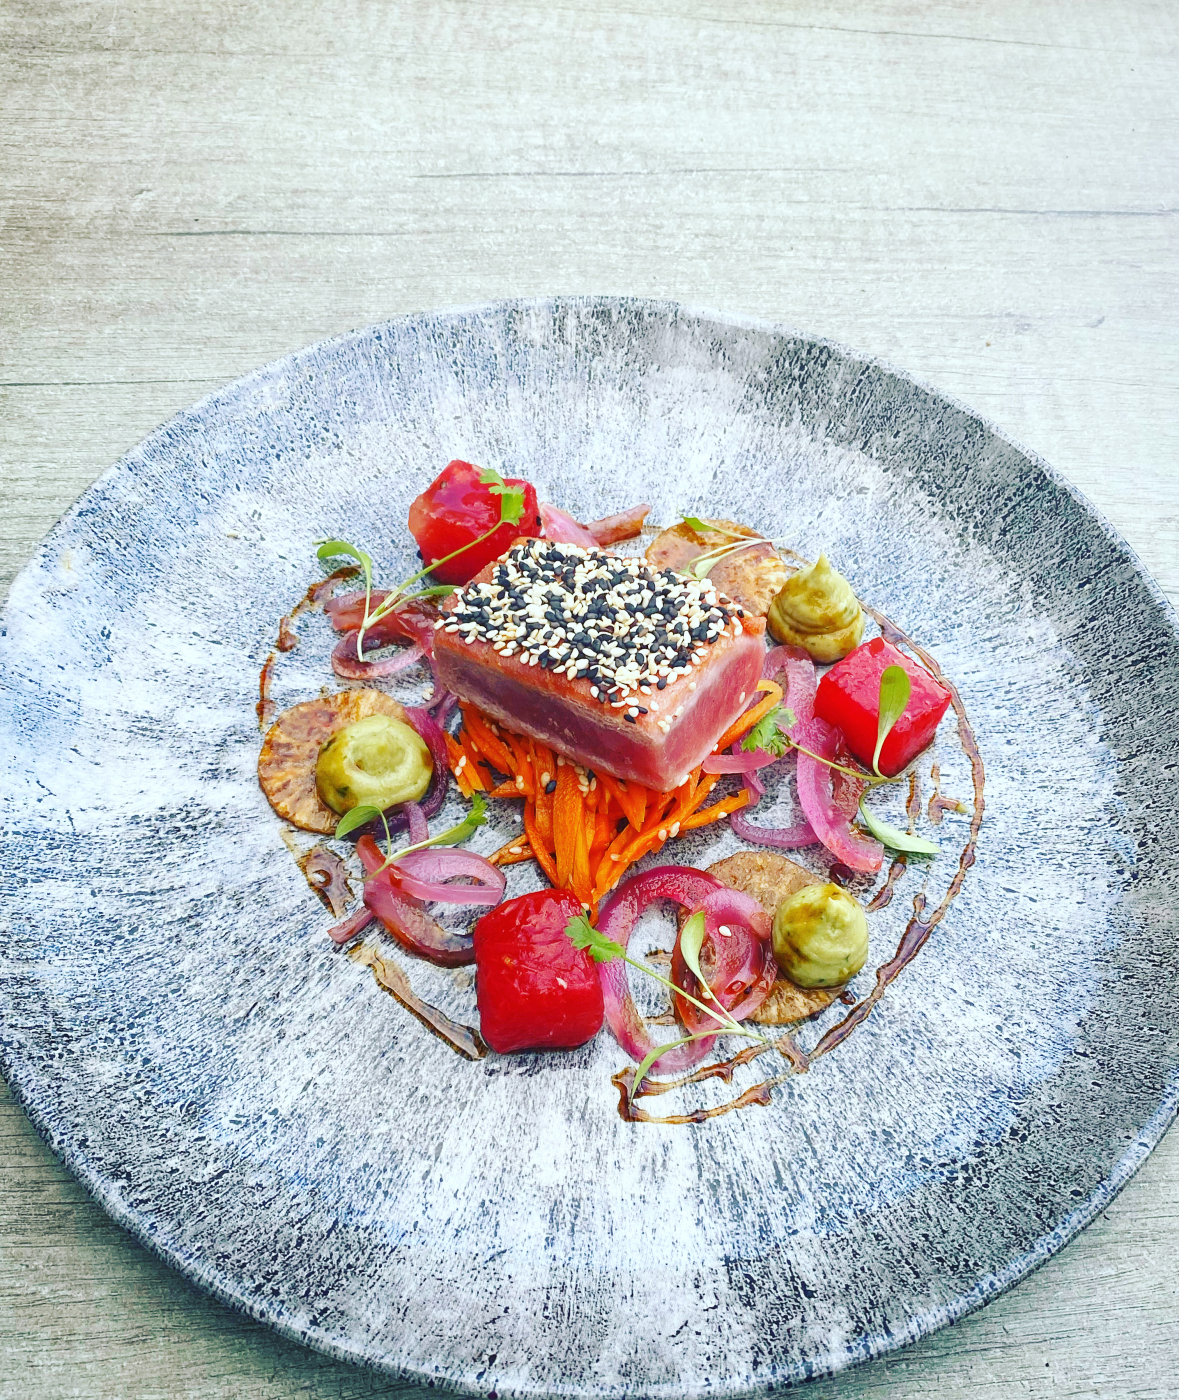 Sesame seared tuna, carrot & ginger slaw, soy marinated mouli compressed watermelon, avocado purée, pink onions